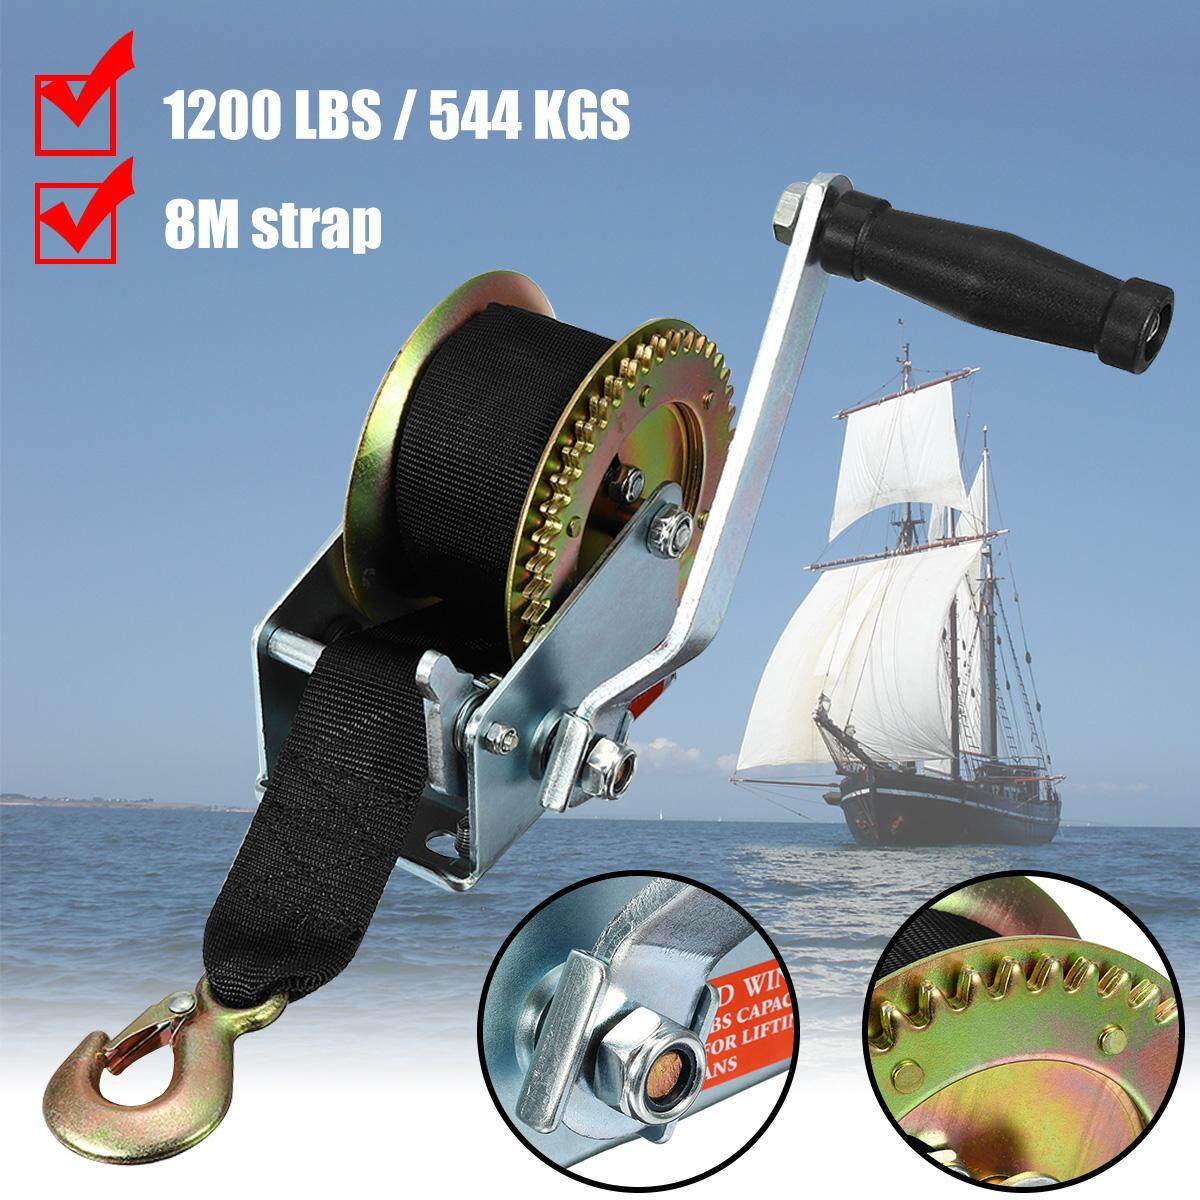 1200LBS/544KGS Hand Winch Gear 2-Way Synthetic Boat Tailer Camper With 8M Strap - intl